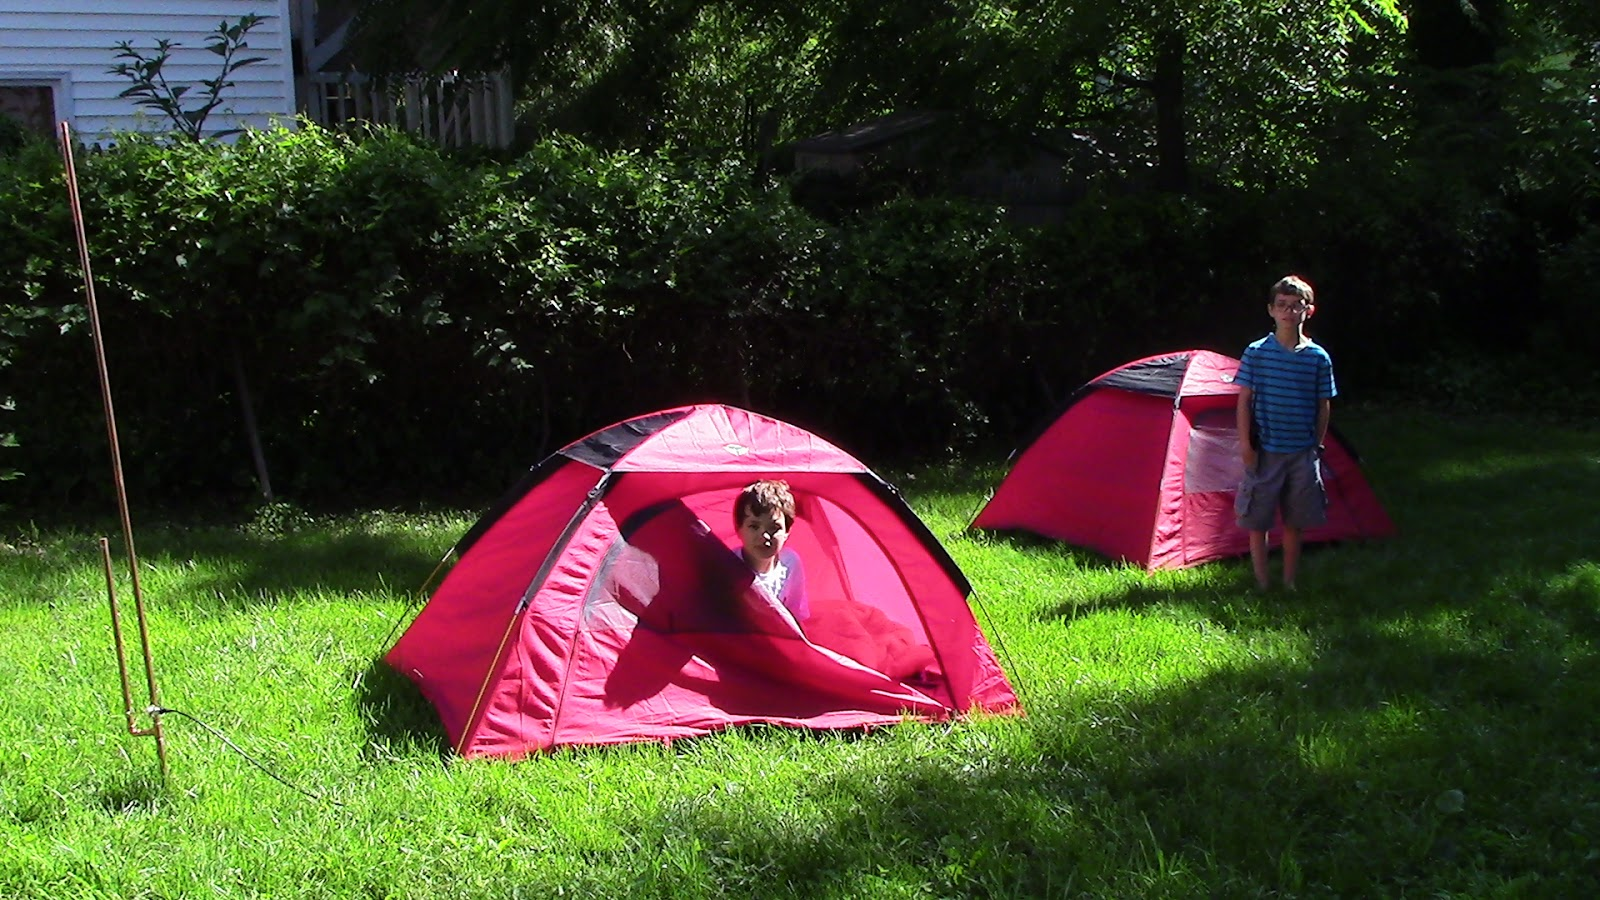 We have two small inexpensive tents that we purchased years ago. Theyu0027re simple and easy to set up. Best of all theyu0027re very lightweight. & Engineering mathematical machines